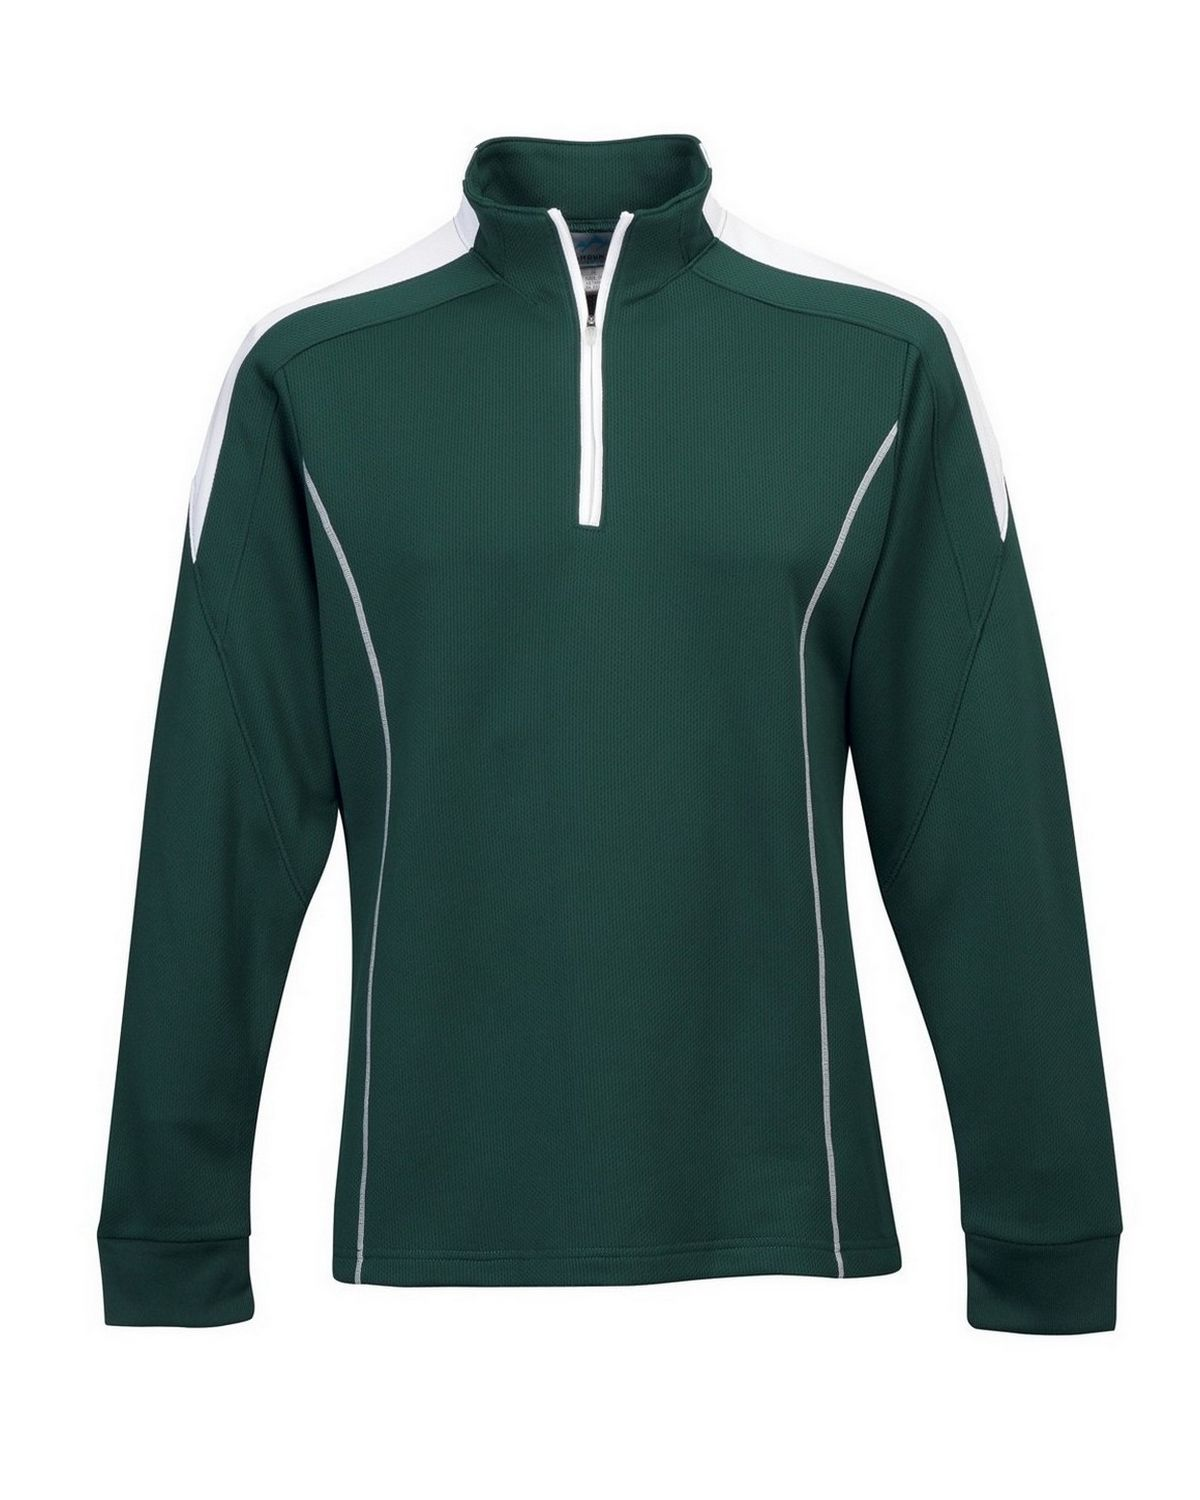 Tri-Mountain Performance 605 Fullerton - Forest Green/White - L 605